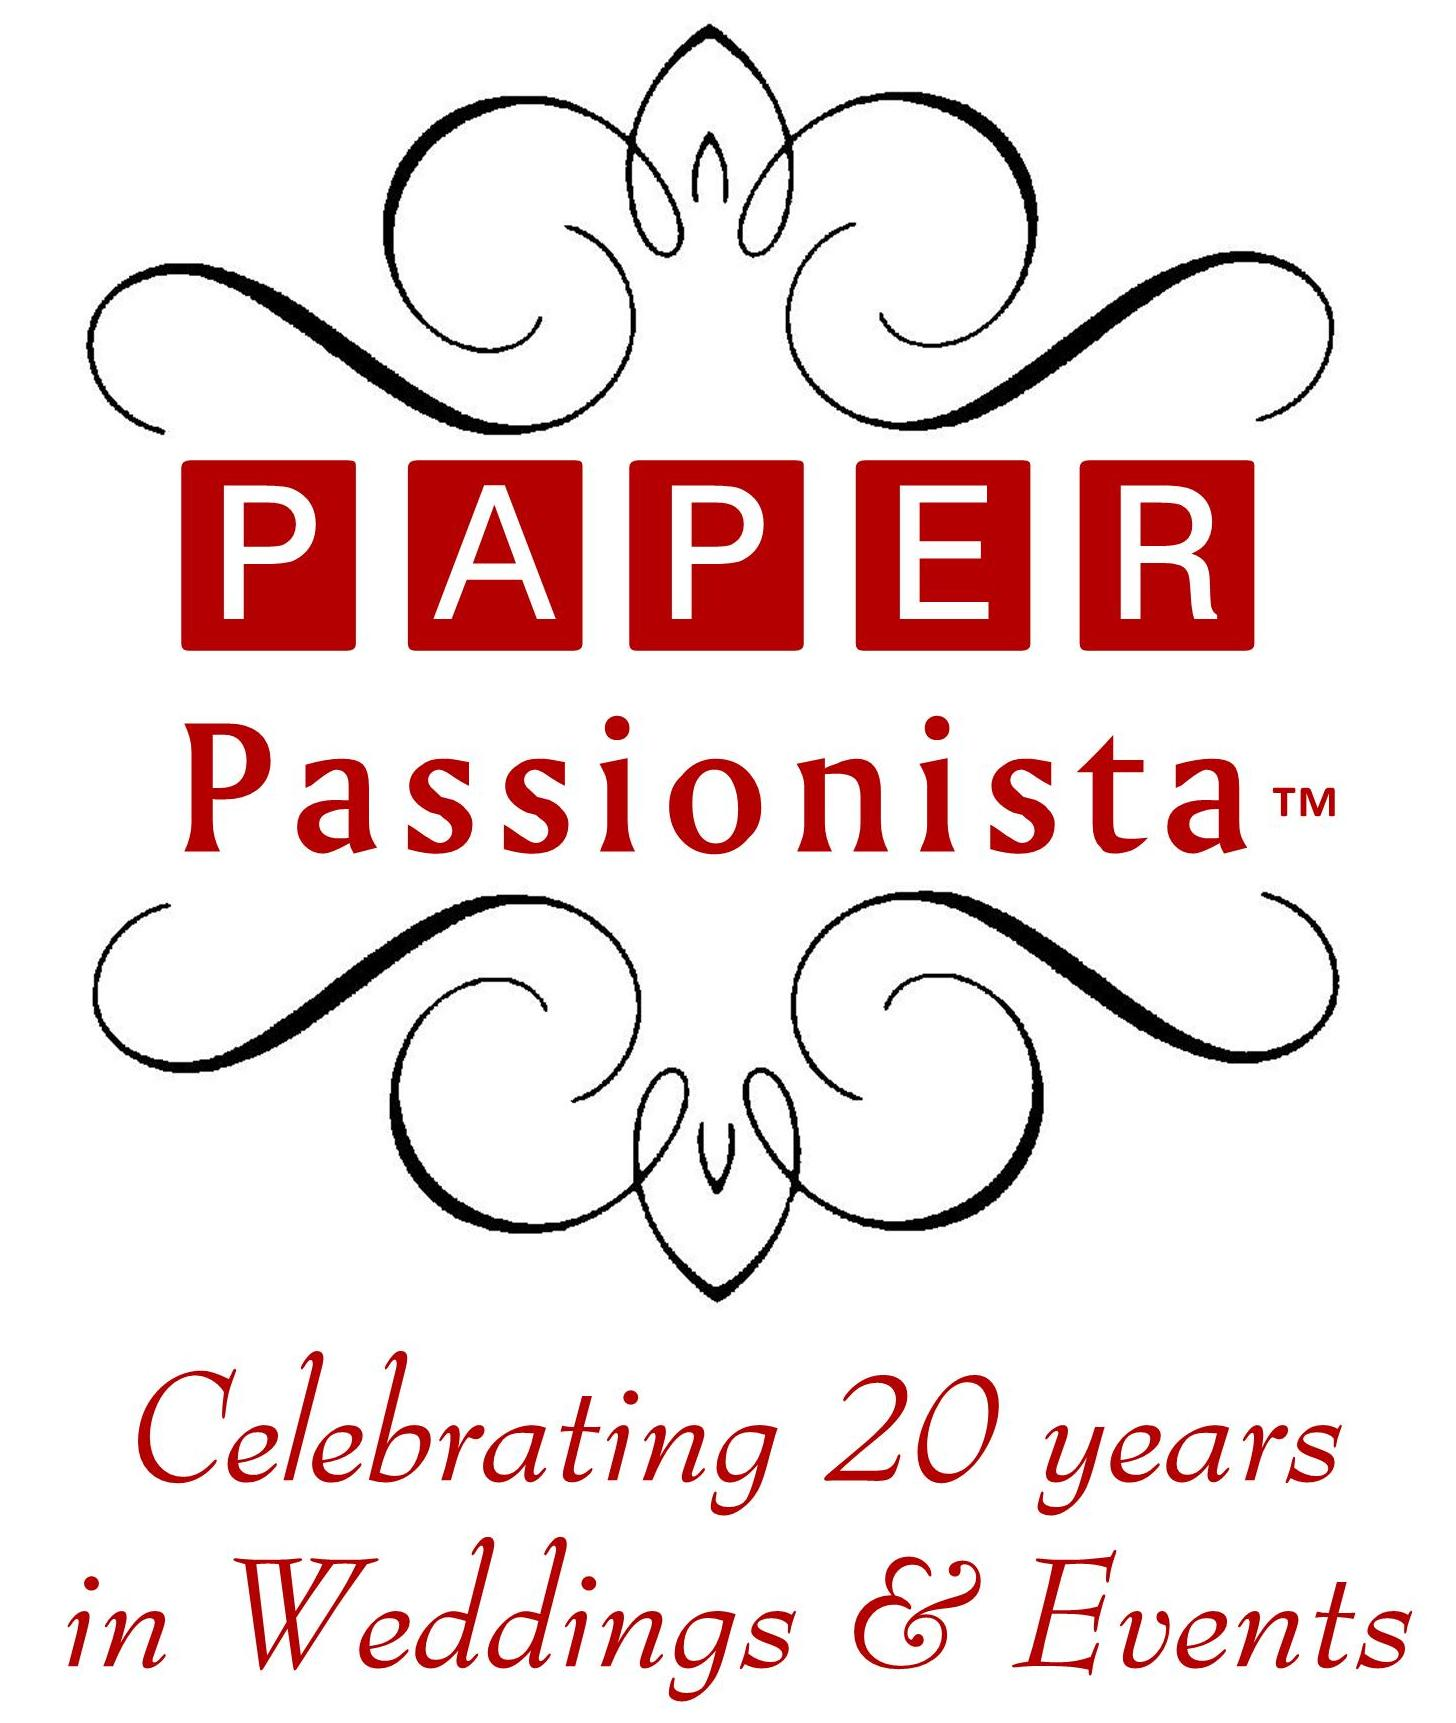 Paper Passionista: Social & Business Stationery